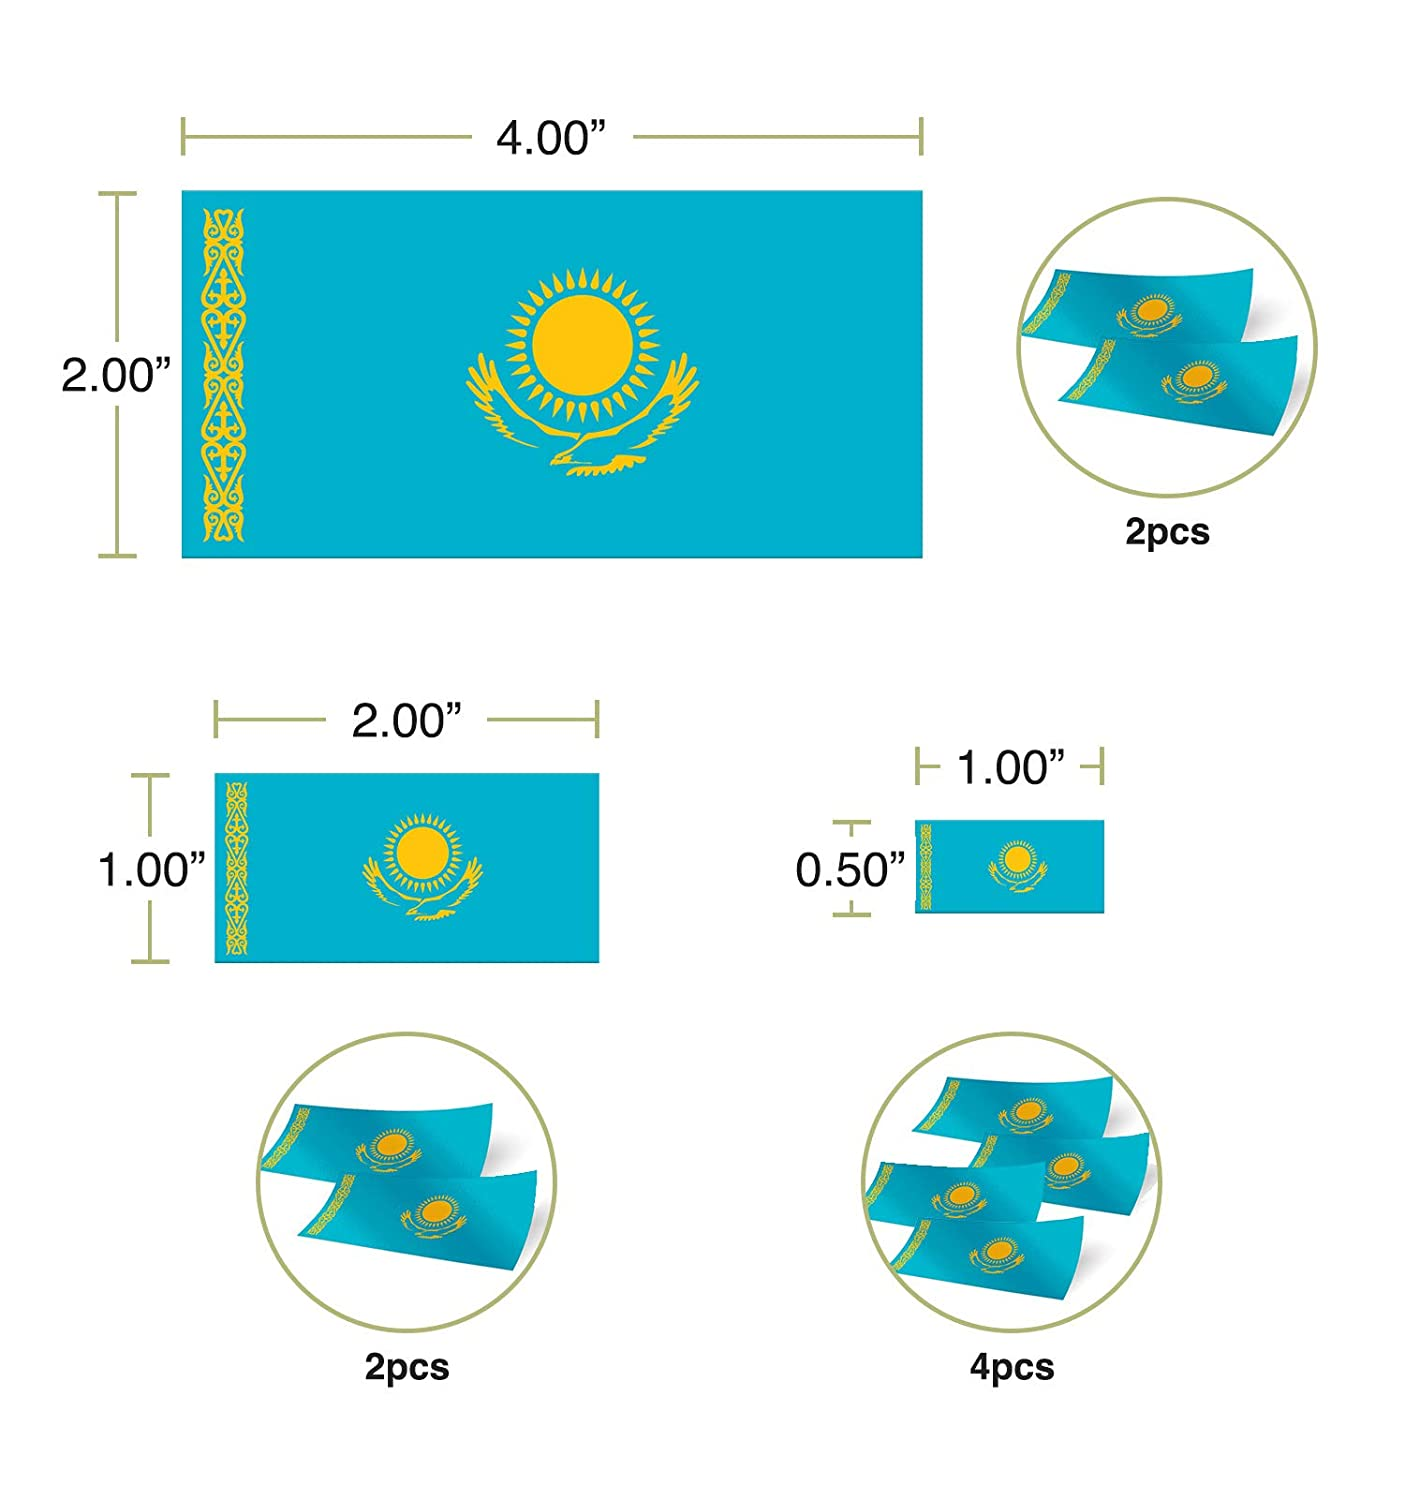 Desert Cactus Kazakhstan Country Flag Sticker Decal Variety Size Pack 8 Total Pieces Kids Logo Scrapbook Car Vinyl Window Bumper Laptop V